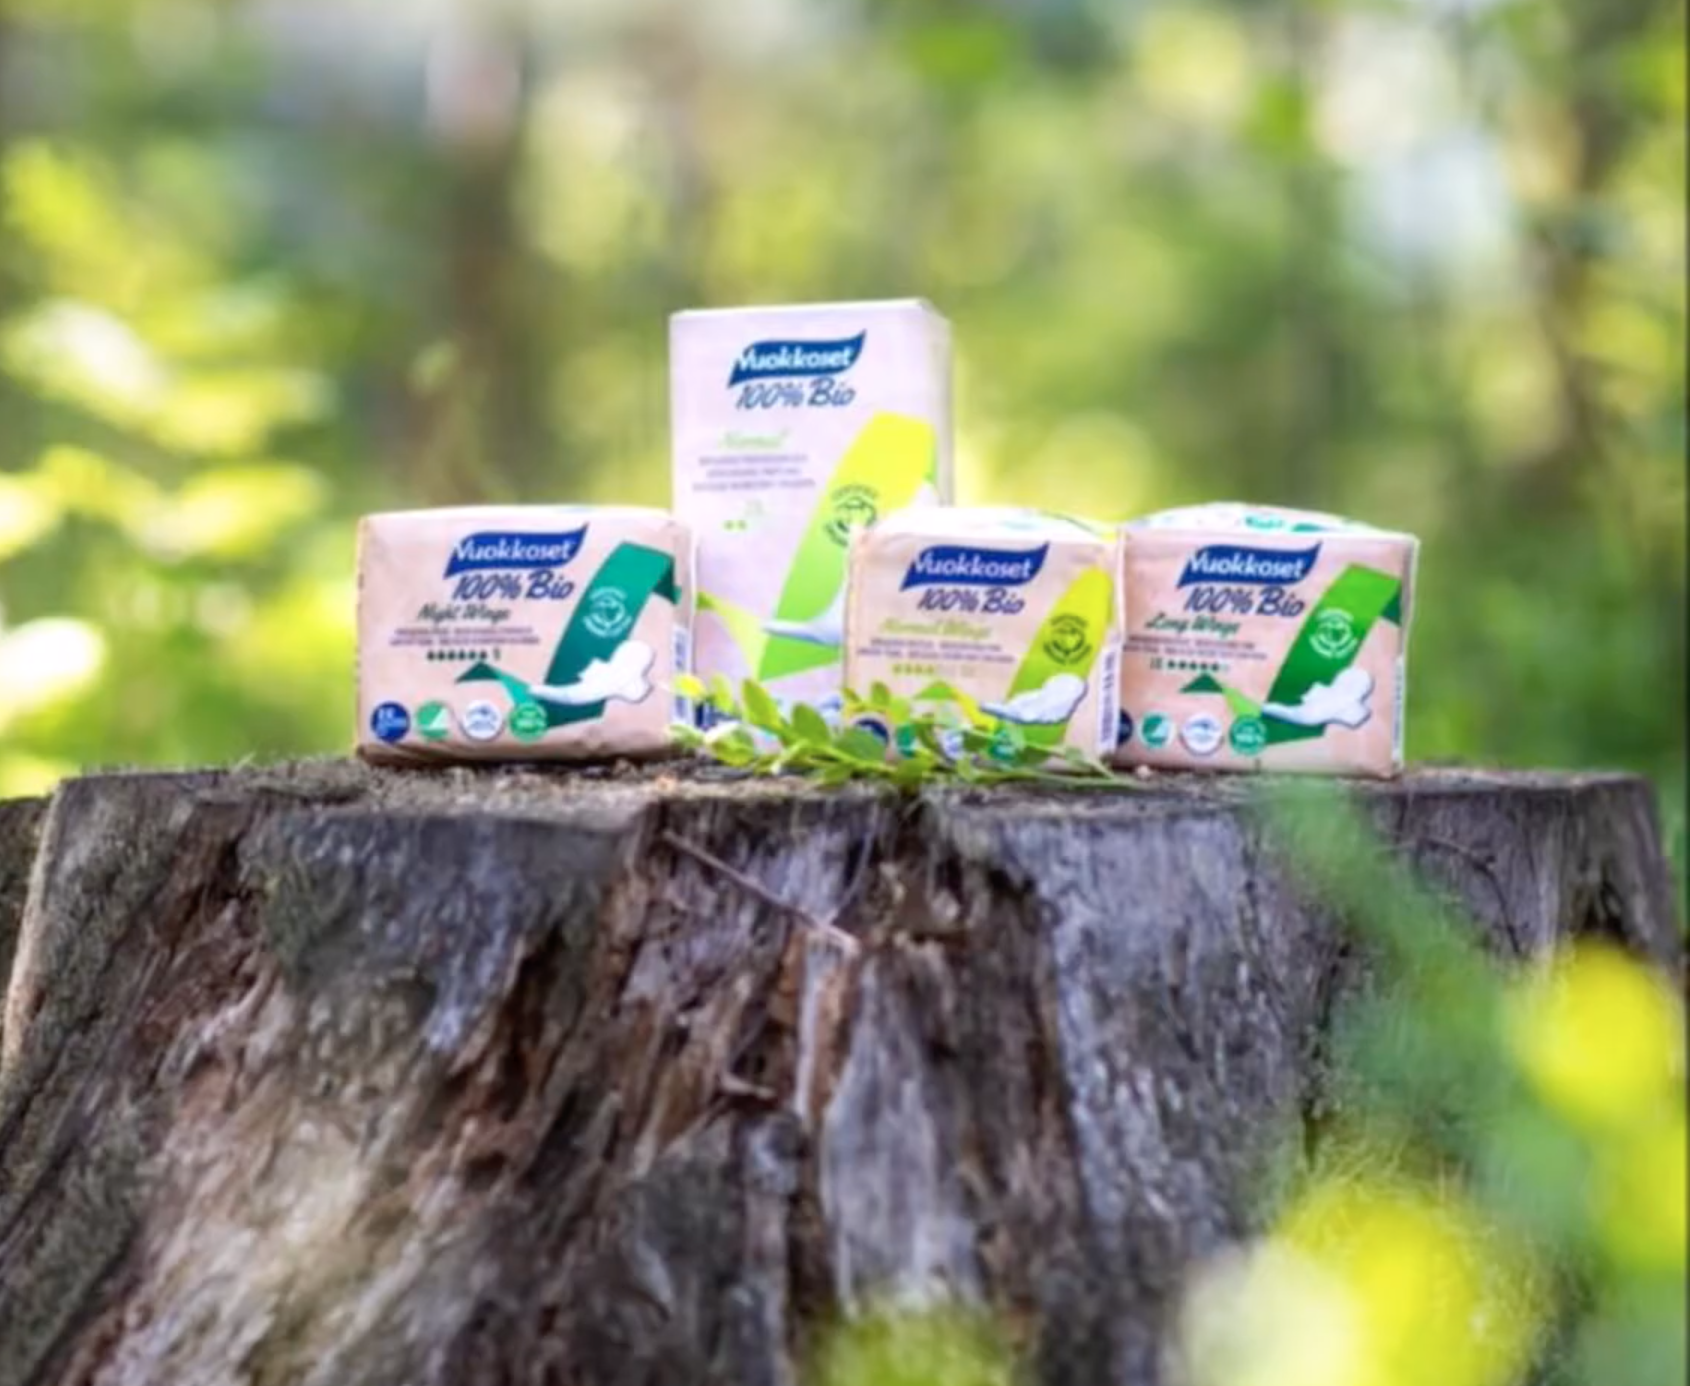 Vuokkoset Biodegradable Sanitary Products